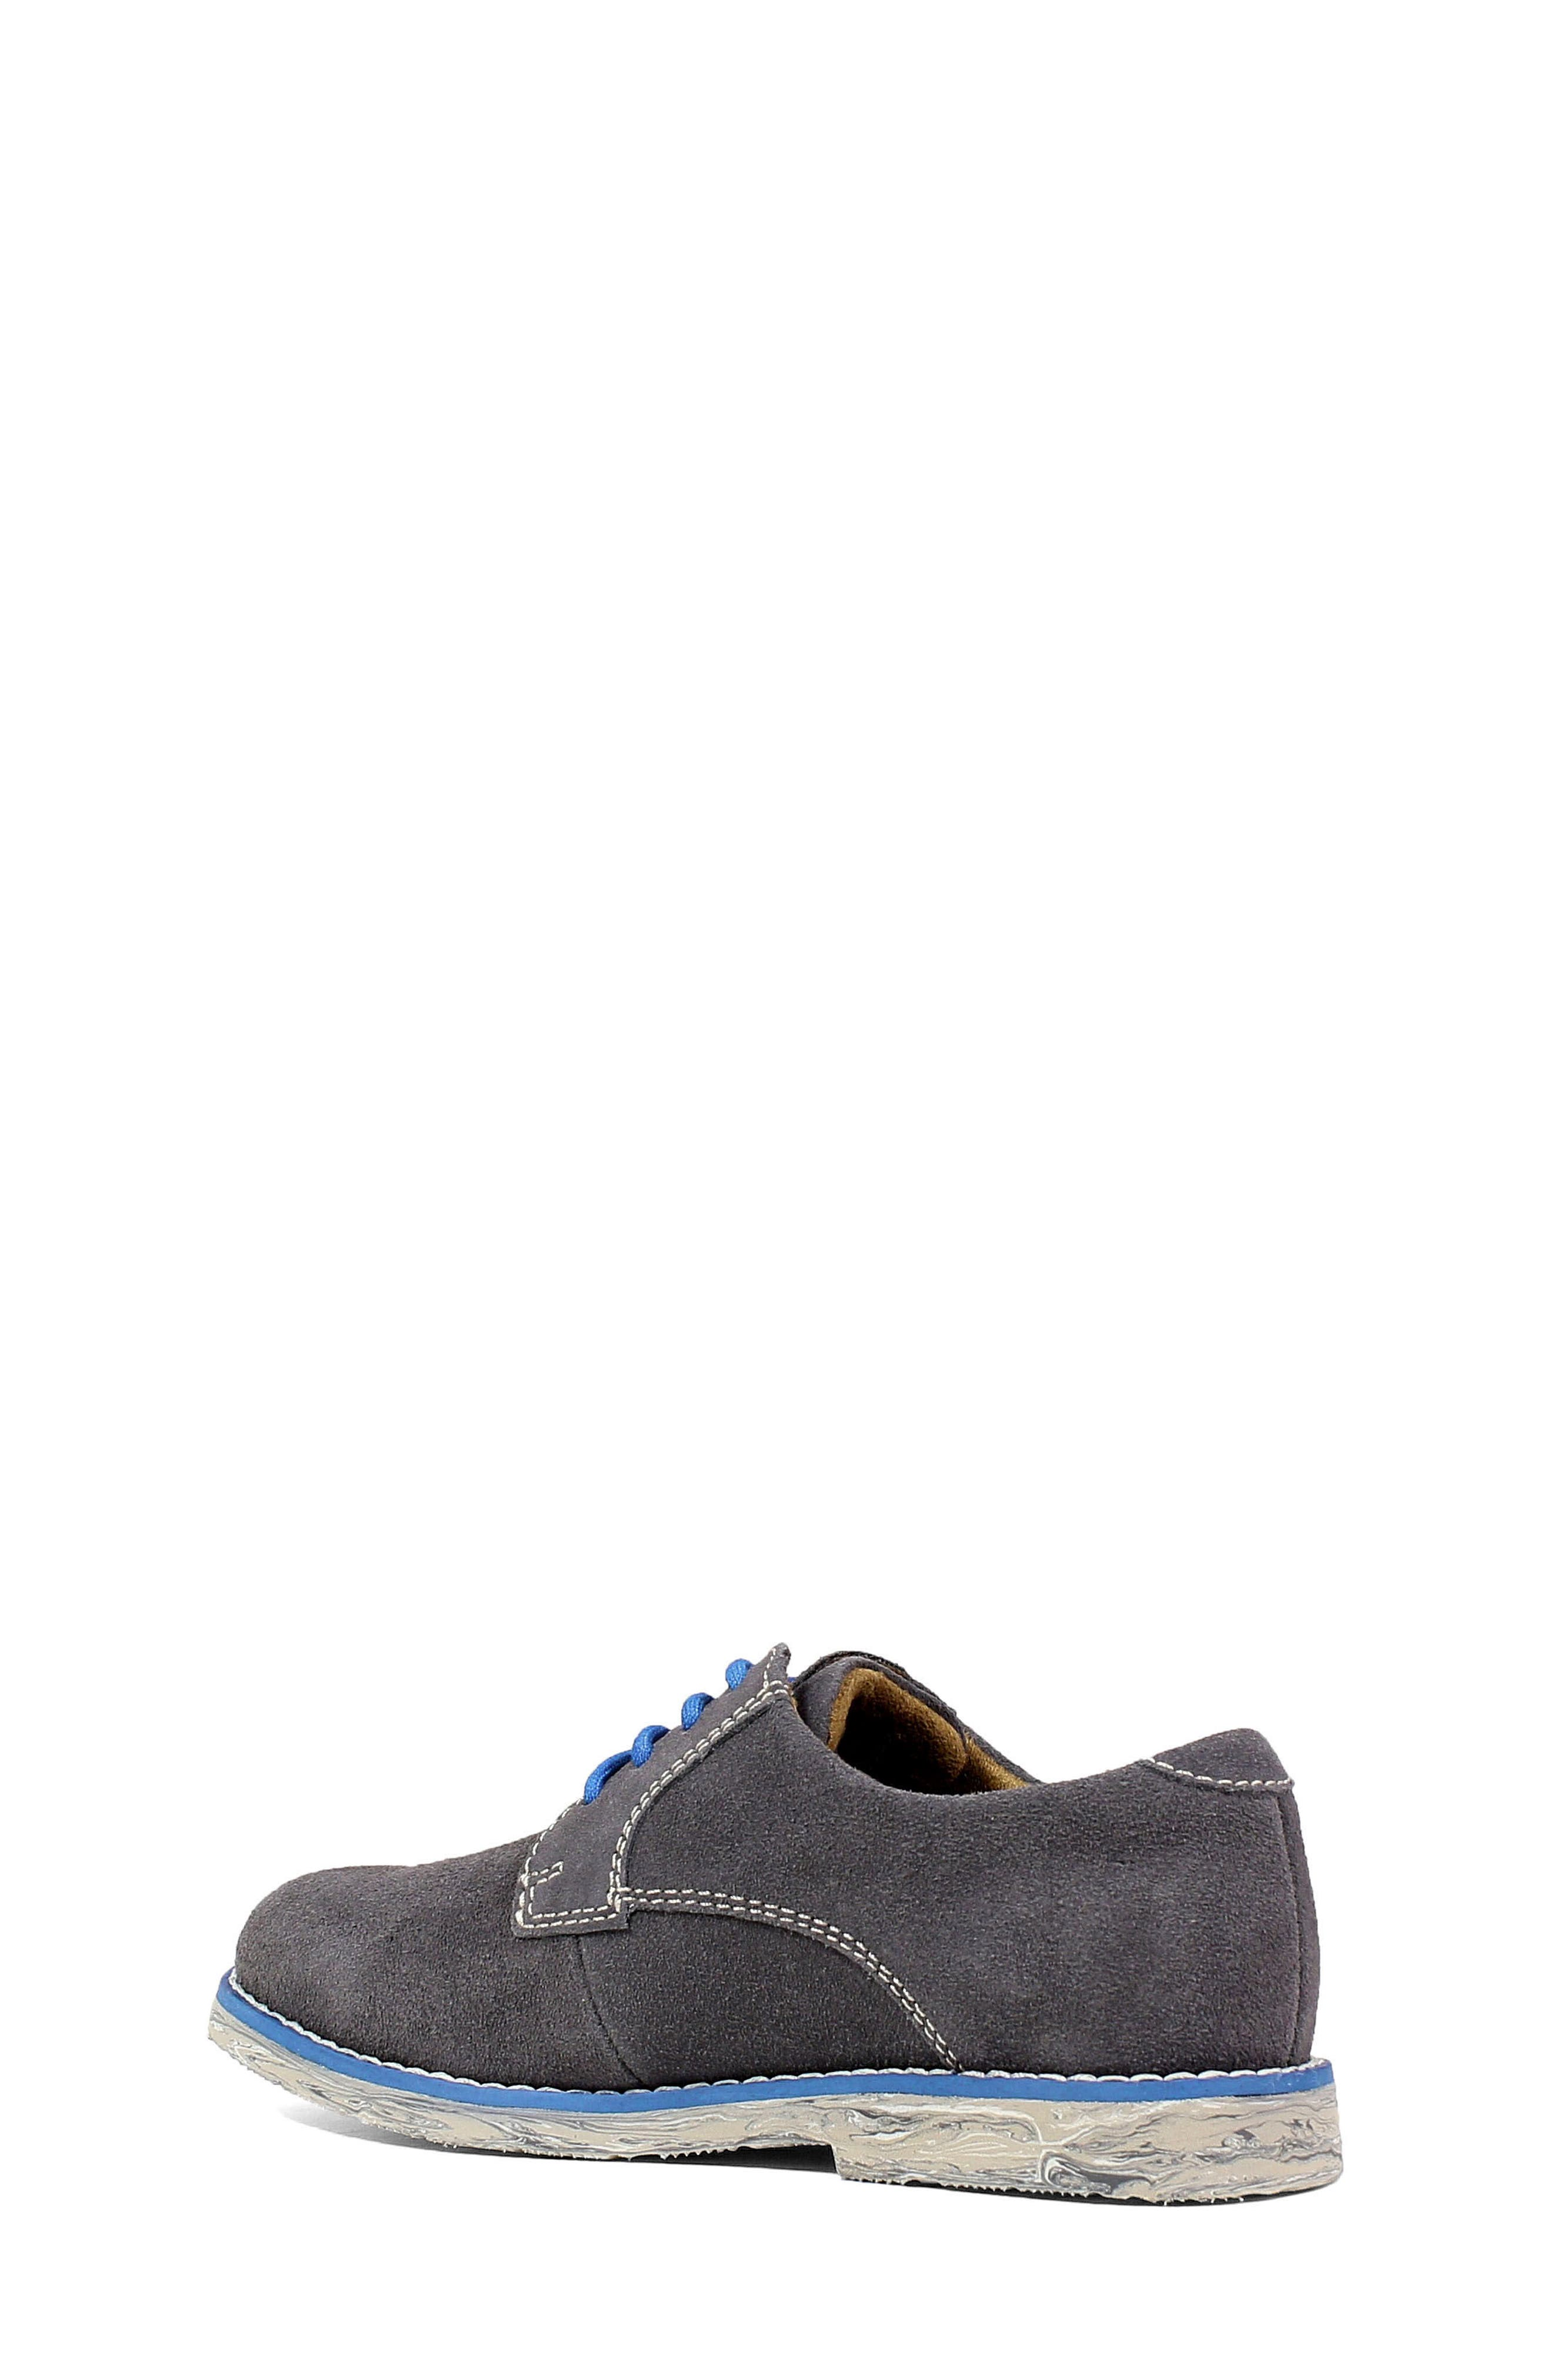 FLORSHEIM,                             Kearny II Oxford,                             Alternate thumbnail 2, color,                             GRAY SUEDE